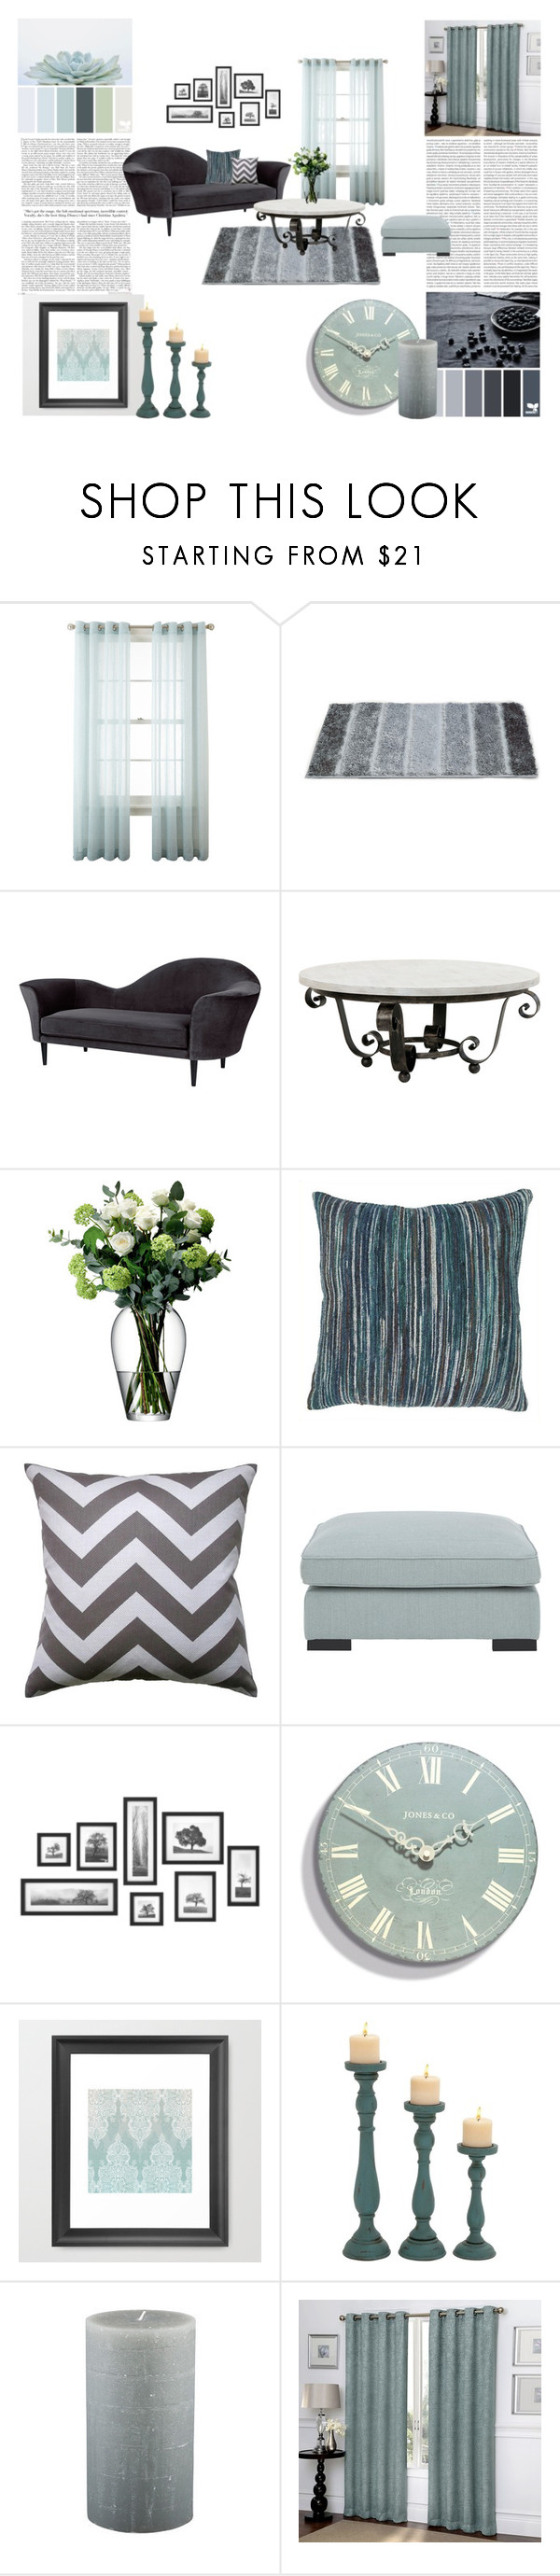 """""""Home Delight"""" by eve4ever ❤ liked on Polyvore featuring interior, interiors, interior design, home, home decor, interior decorating, Royal Velvet, Gubi, Redford House and LSA International"""